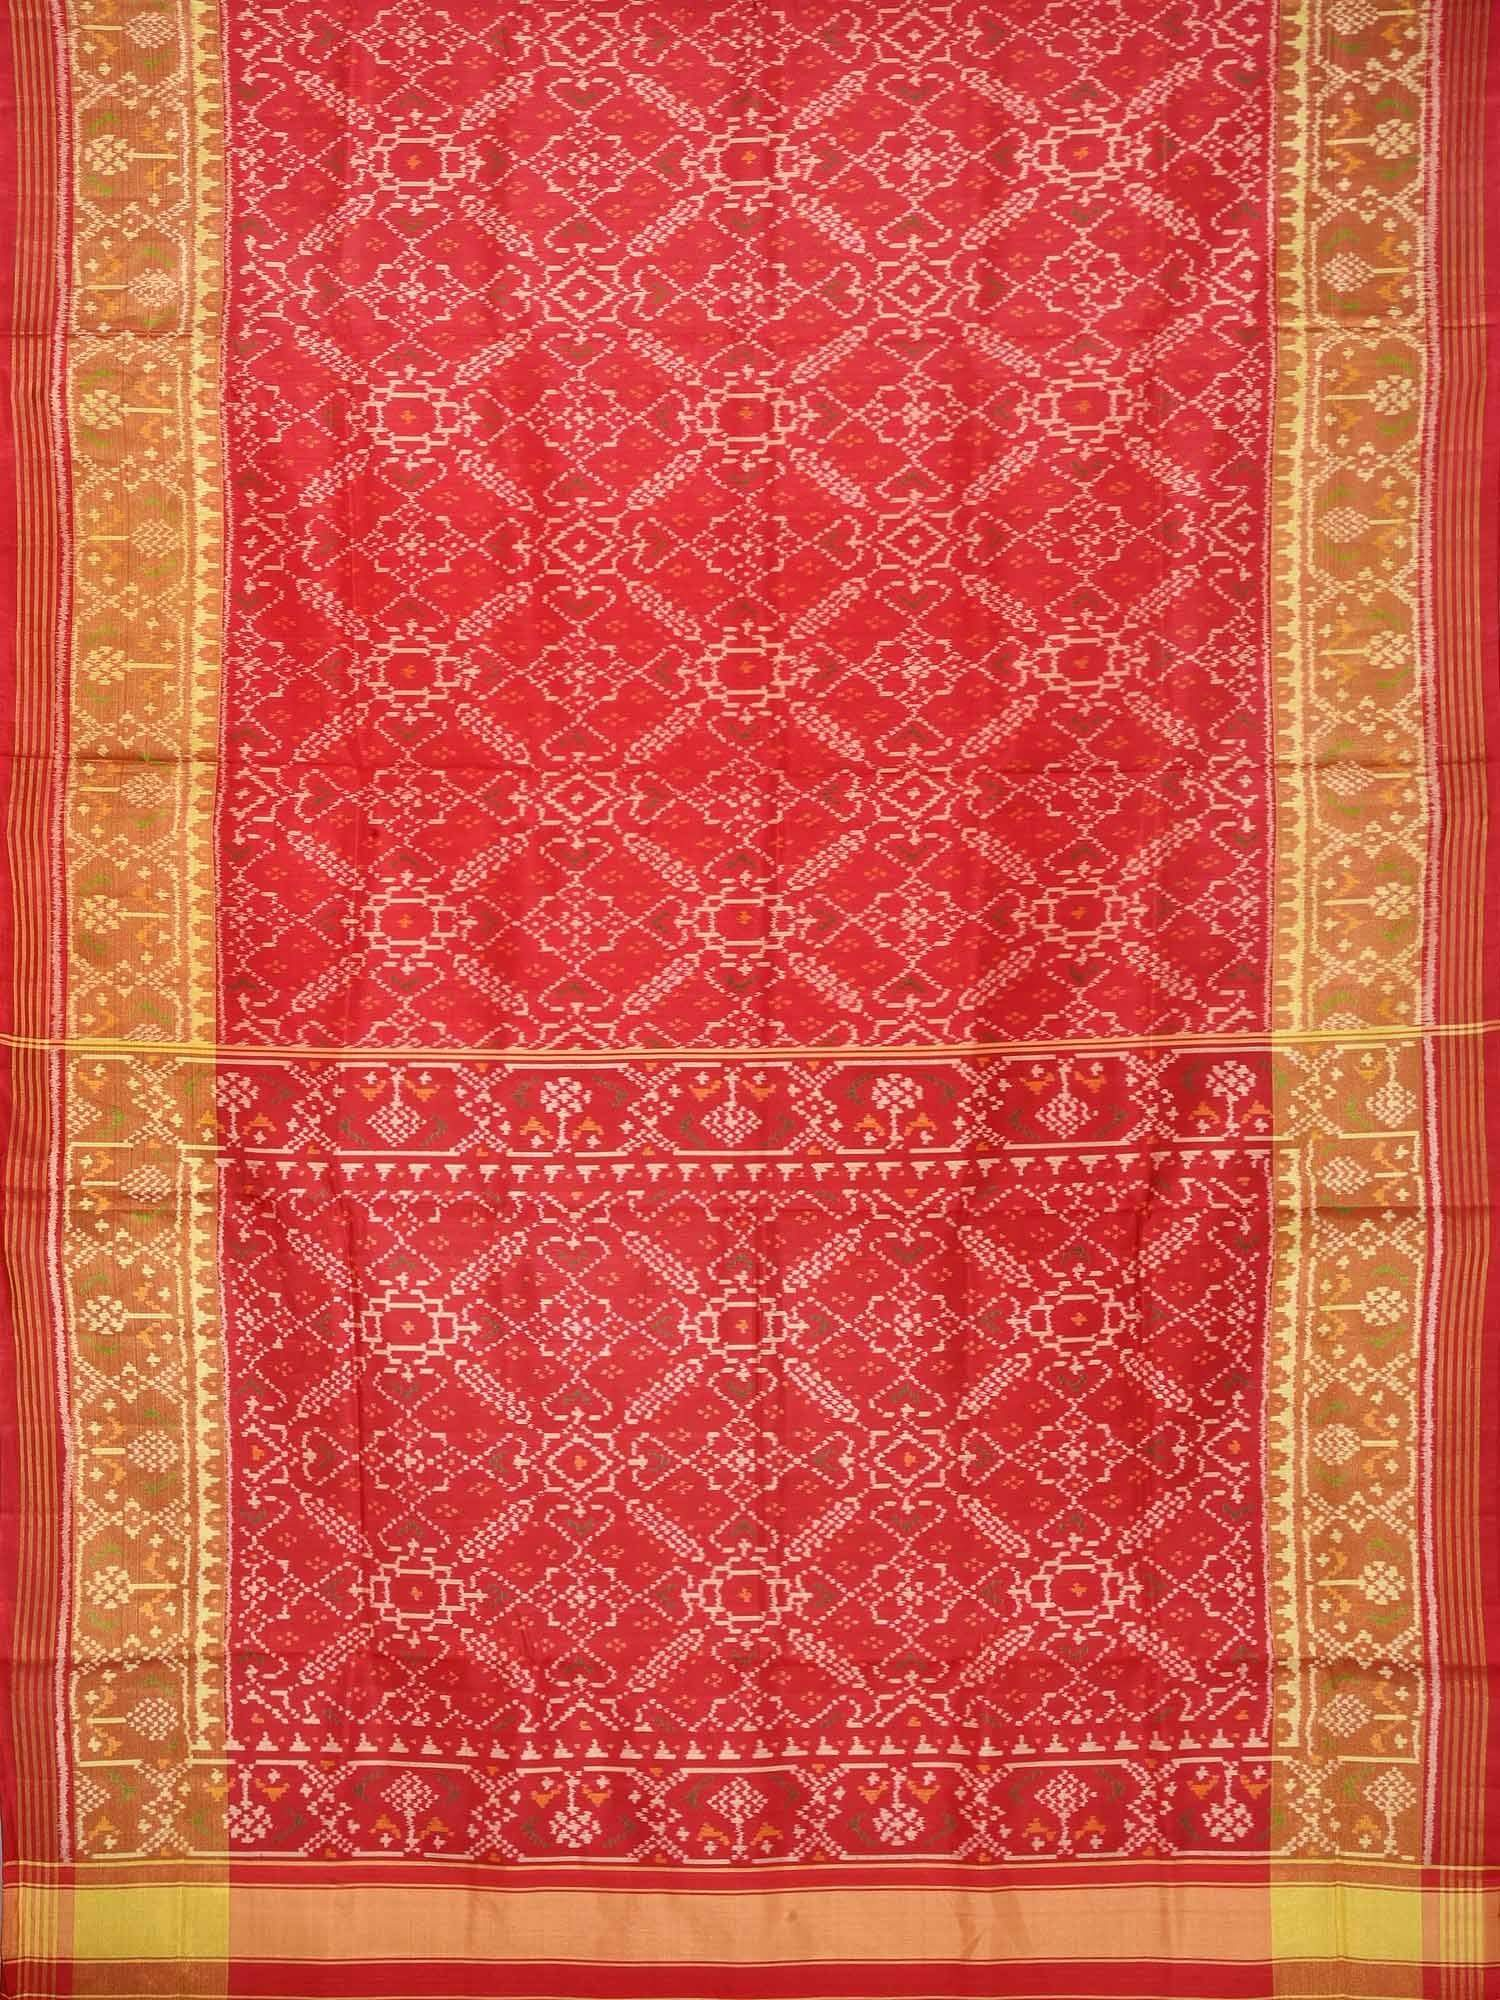 Red Pochampally Ikat Silk Handloom Saree with Pan Patola Design i0517